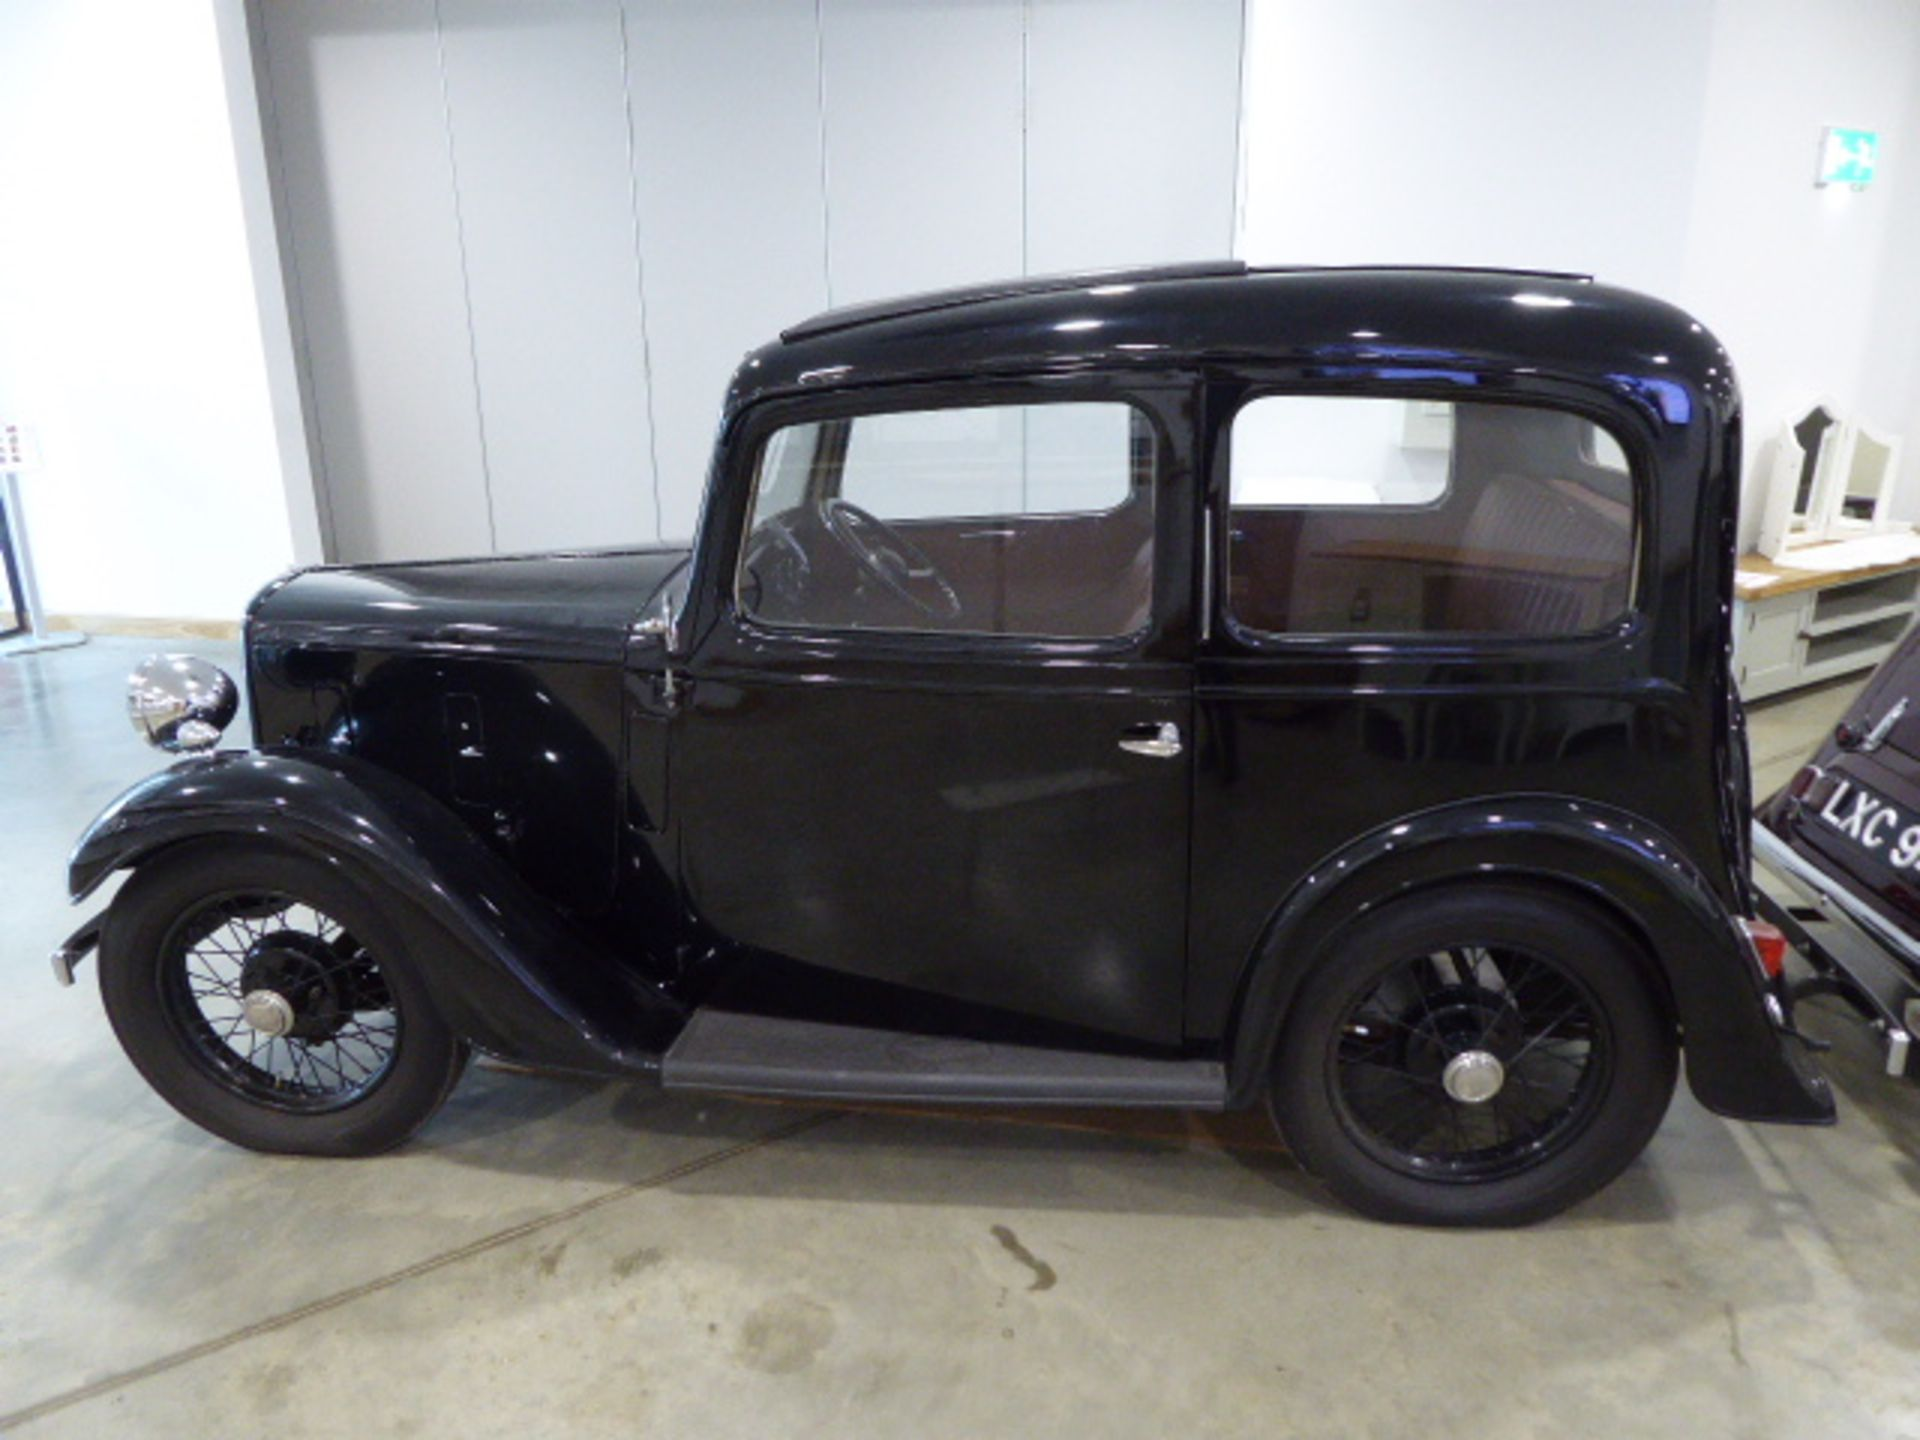 Lot 4001 - DMB 485 1936 Austin Seven Ruby 2 door saloon in black This car has undergone a complete 'bare metal'